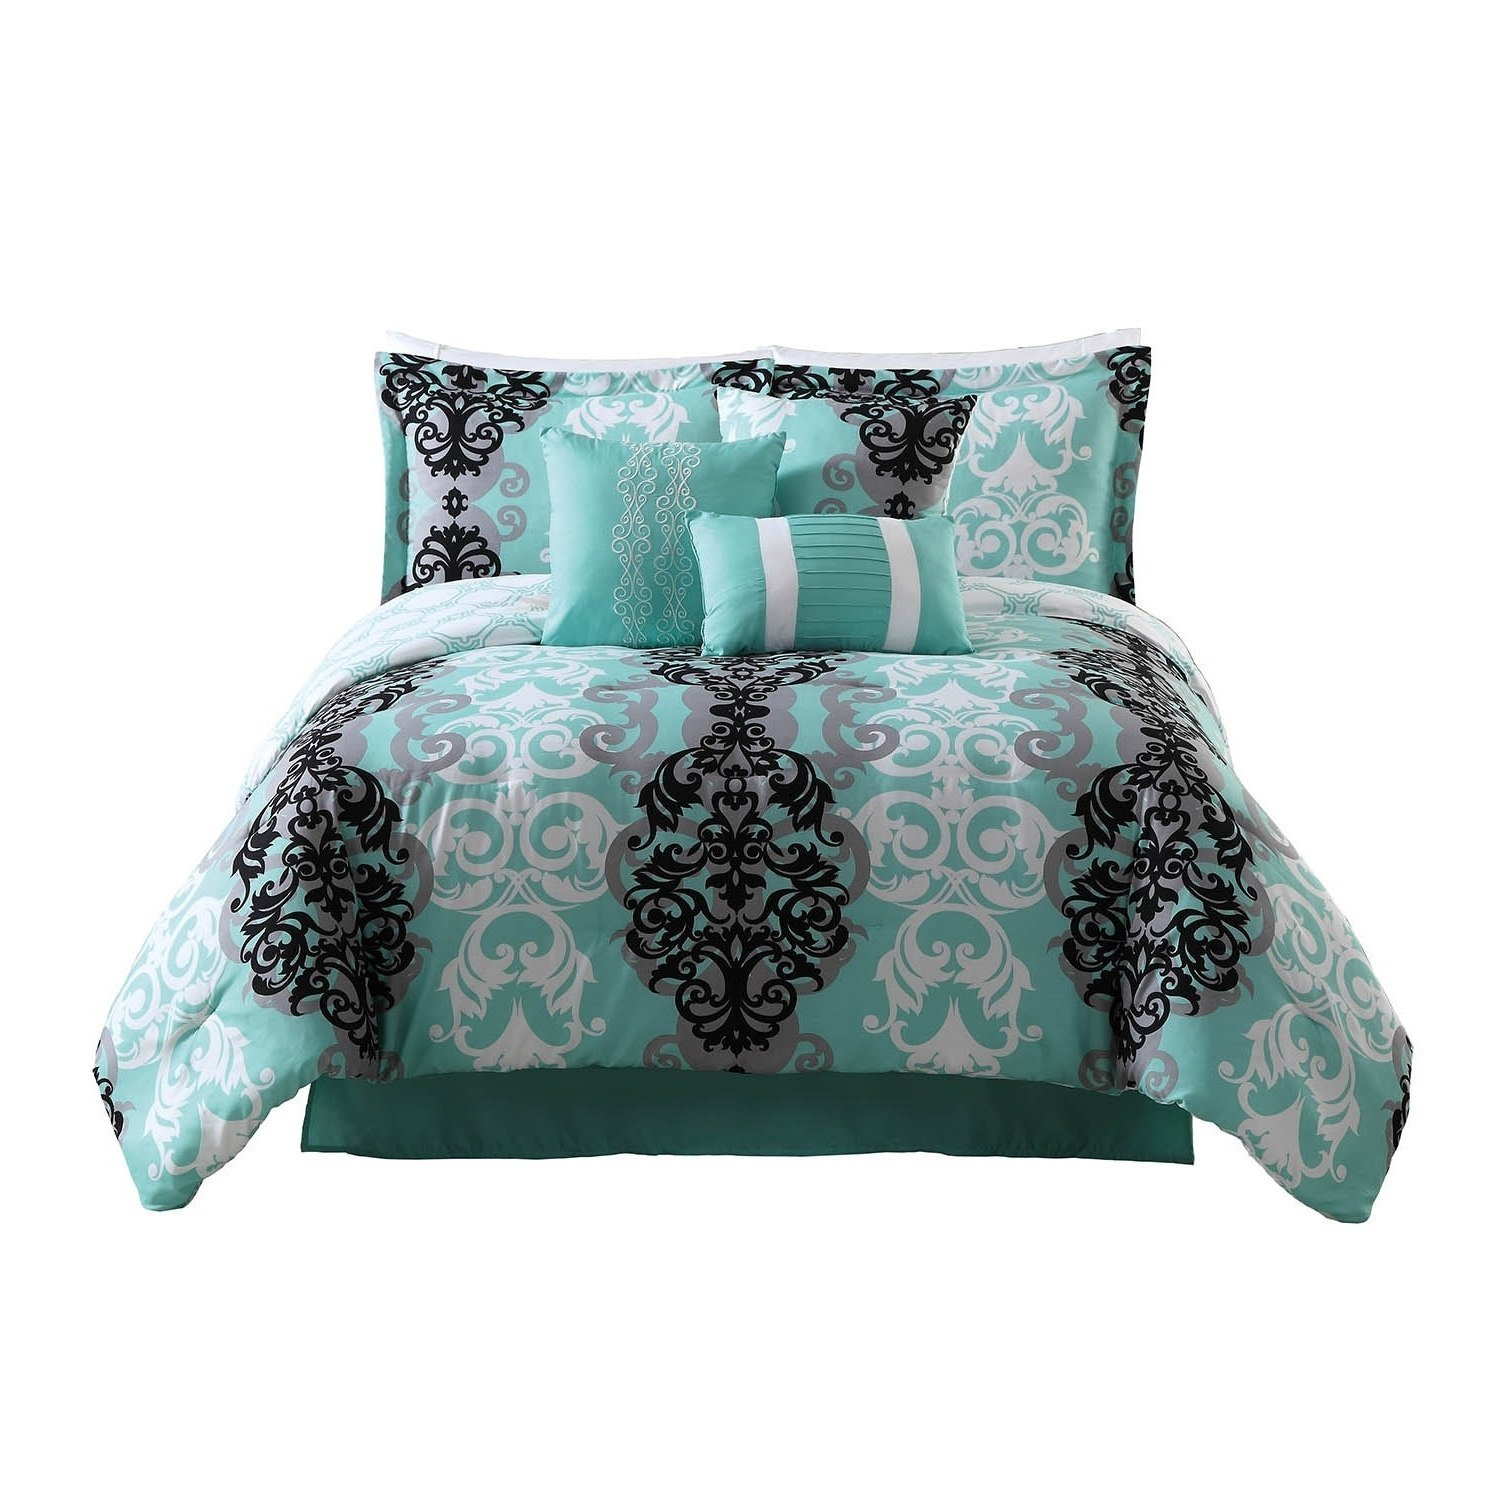 L&M 7 Piece Teal Blue Damask Themed Comforter Queen Set, Grey Black White Floral Paisley Bedding Swirl Scroll Motif Romantic Flower Pattern Gray, Microfiber